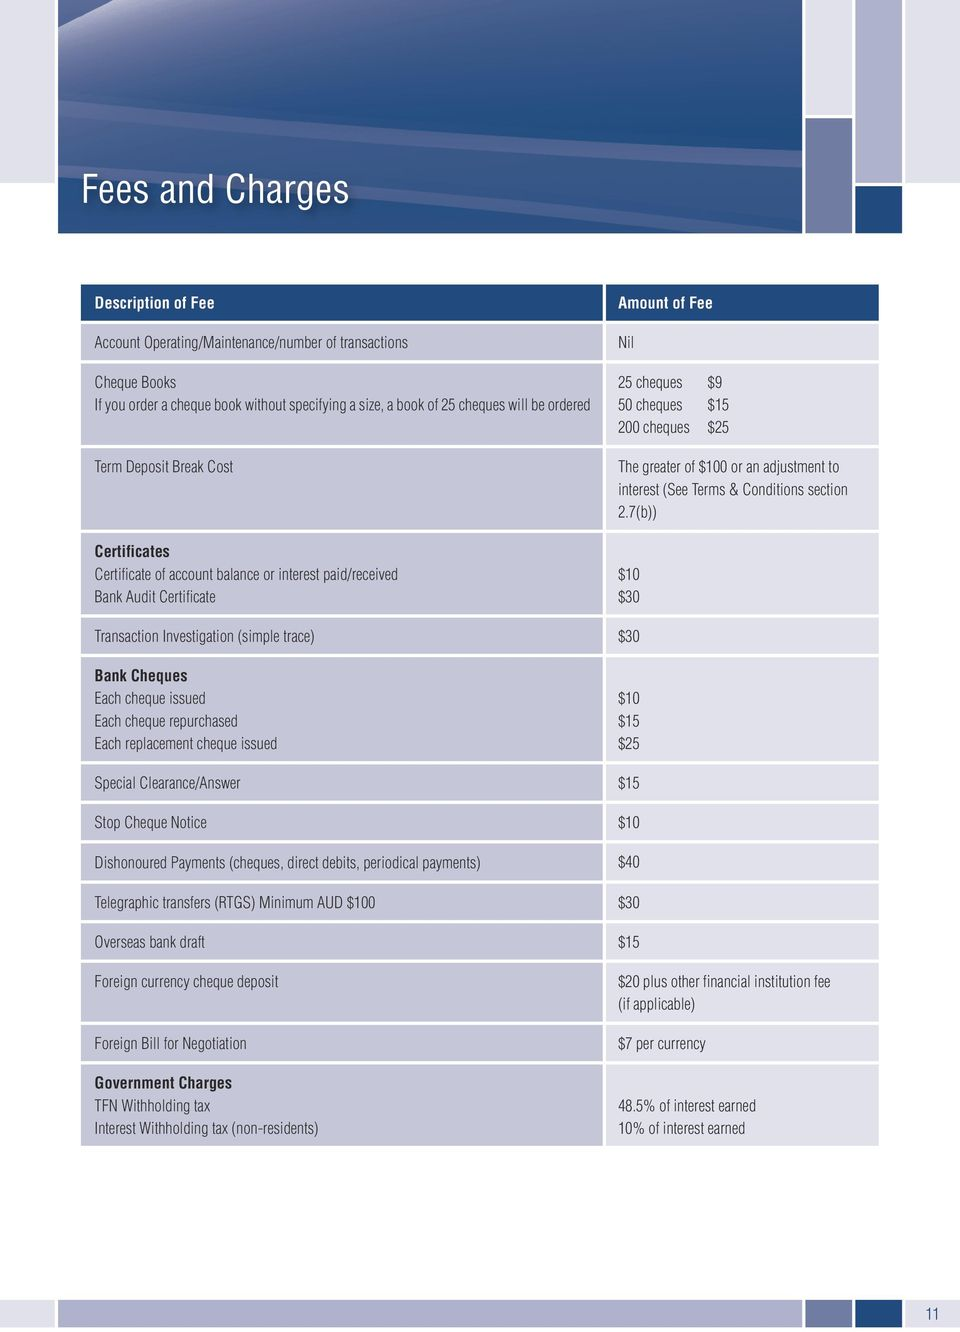 an adjustment to interest (See Terms & Conditions section 2.